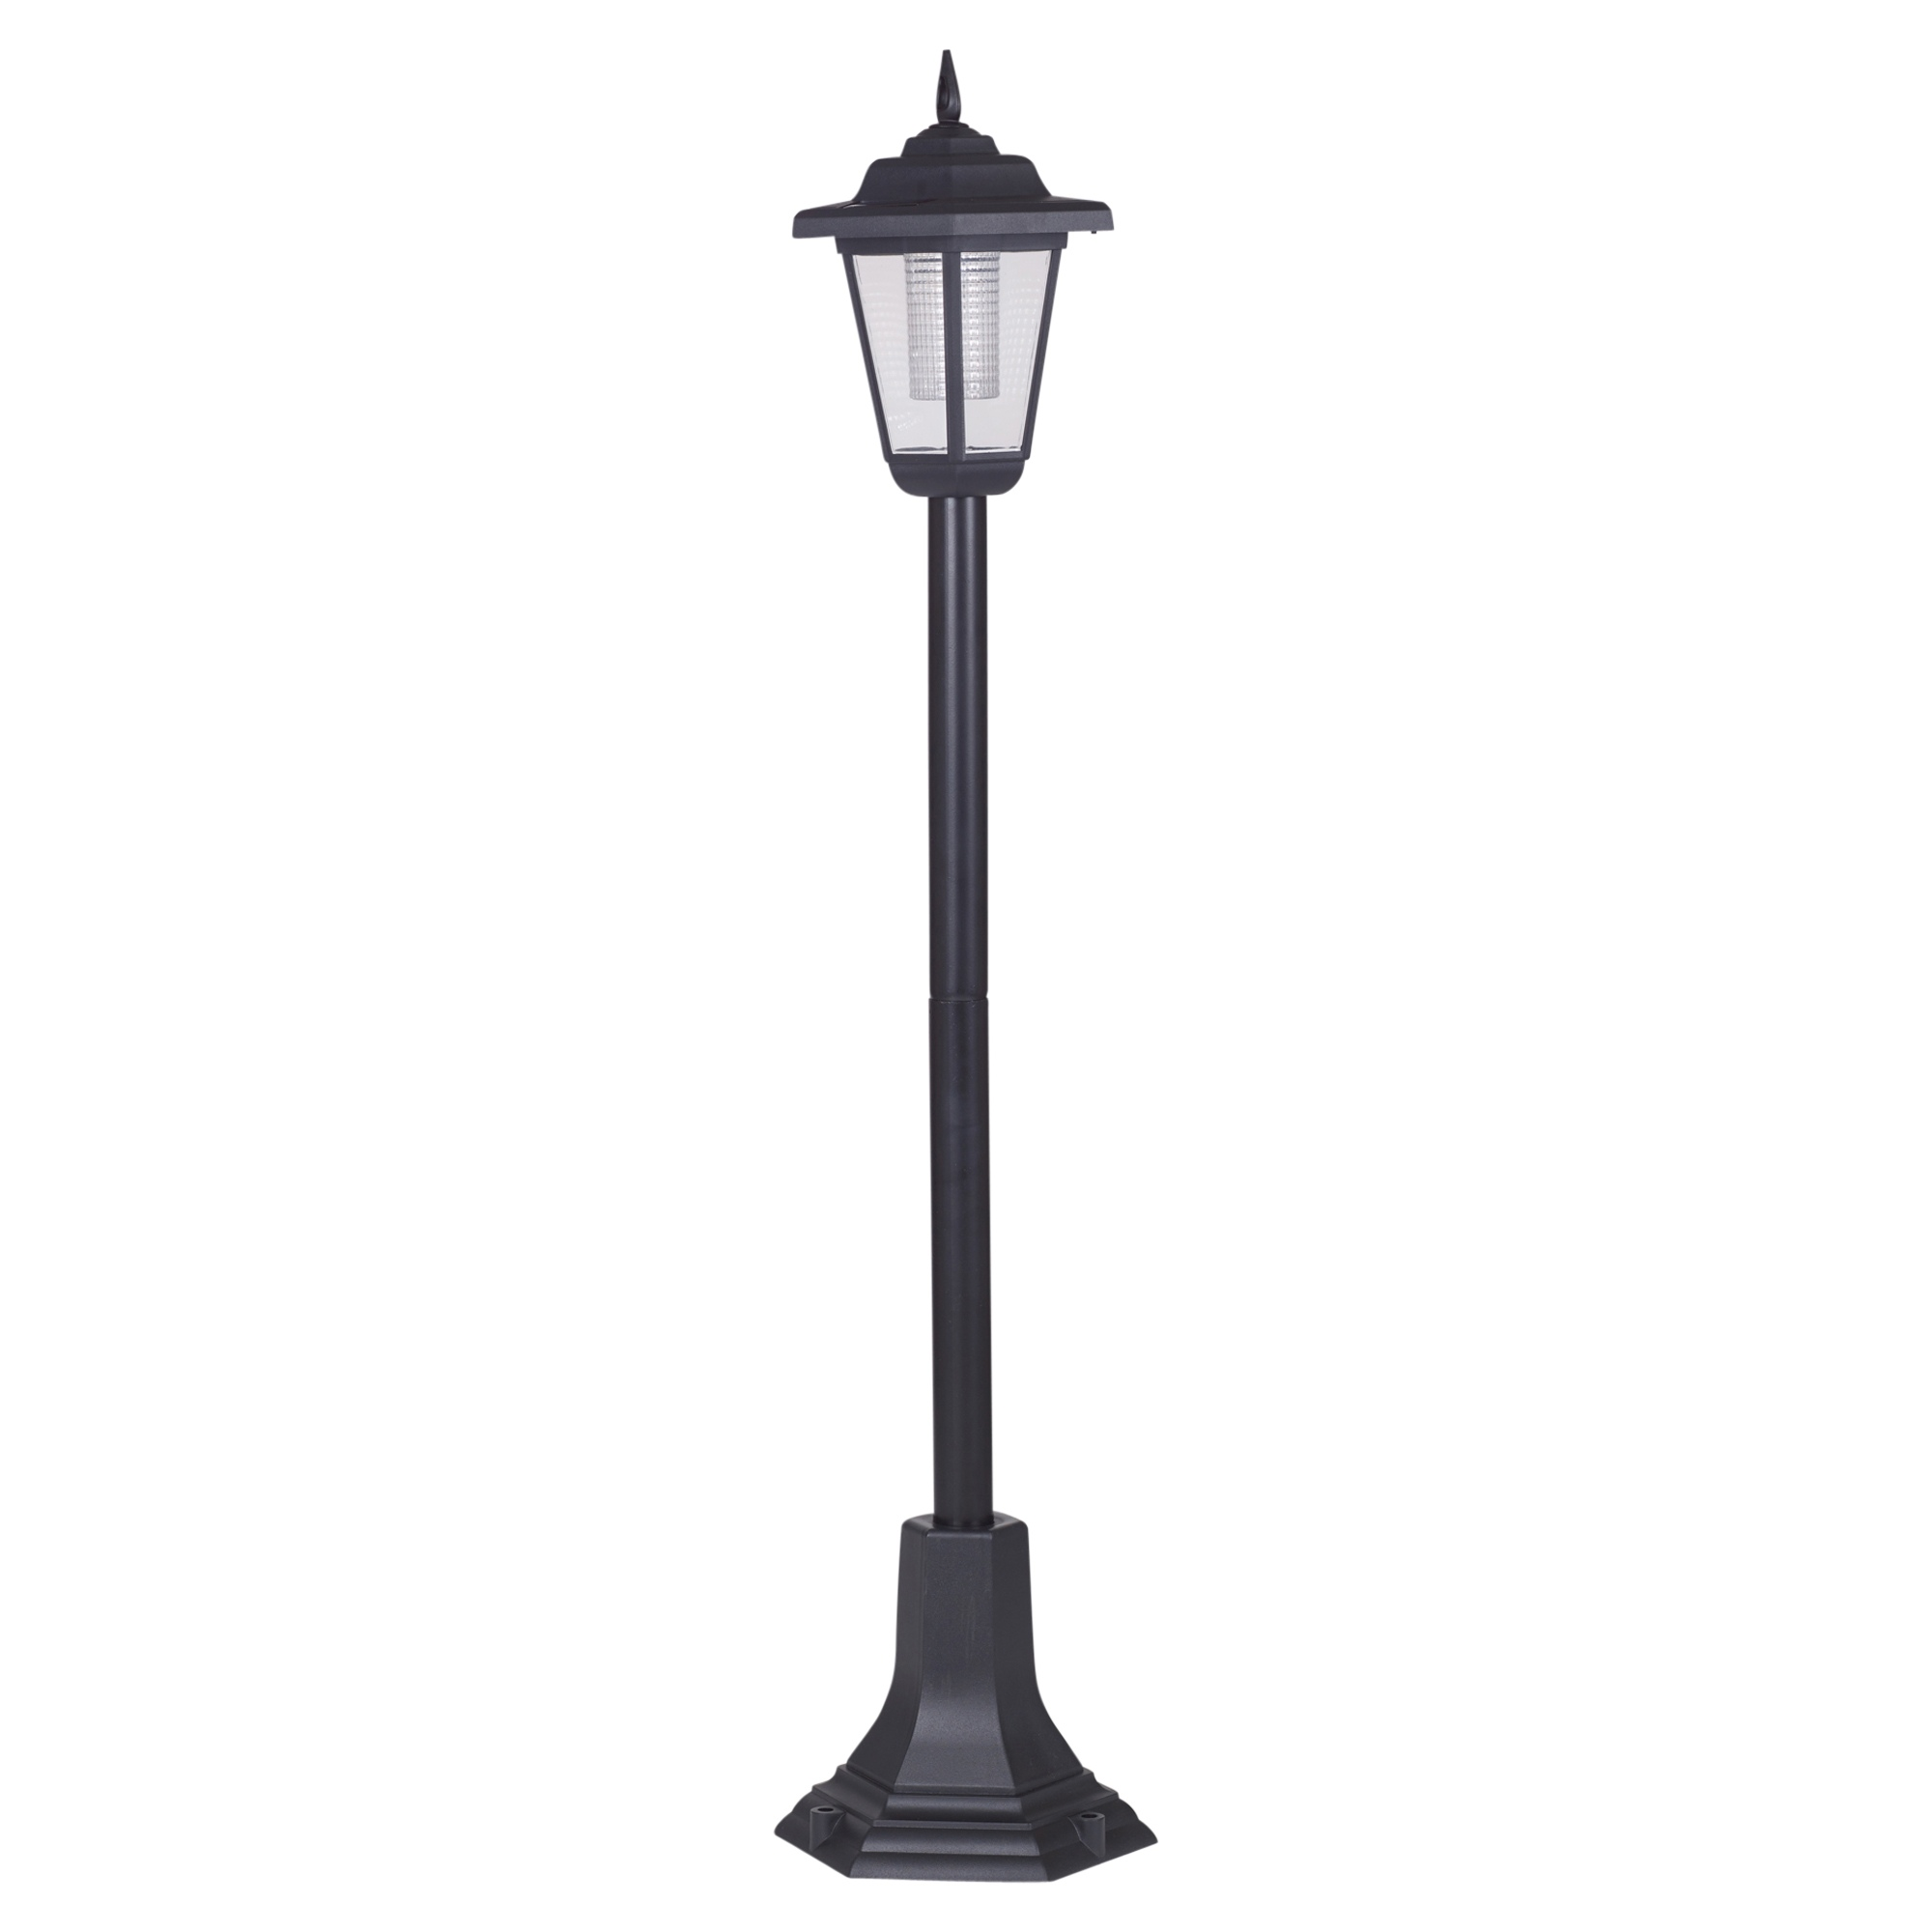 Solar Garden Light Lantern: Solar Powered Garden Lights Lantern Lamp Black LED Pathway